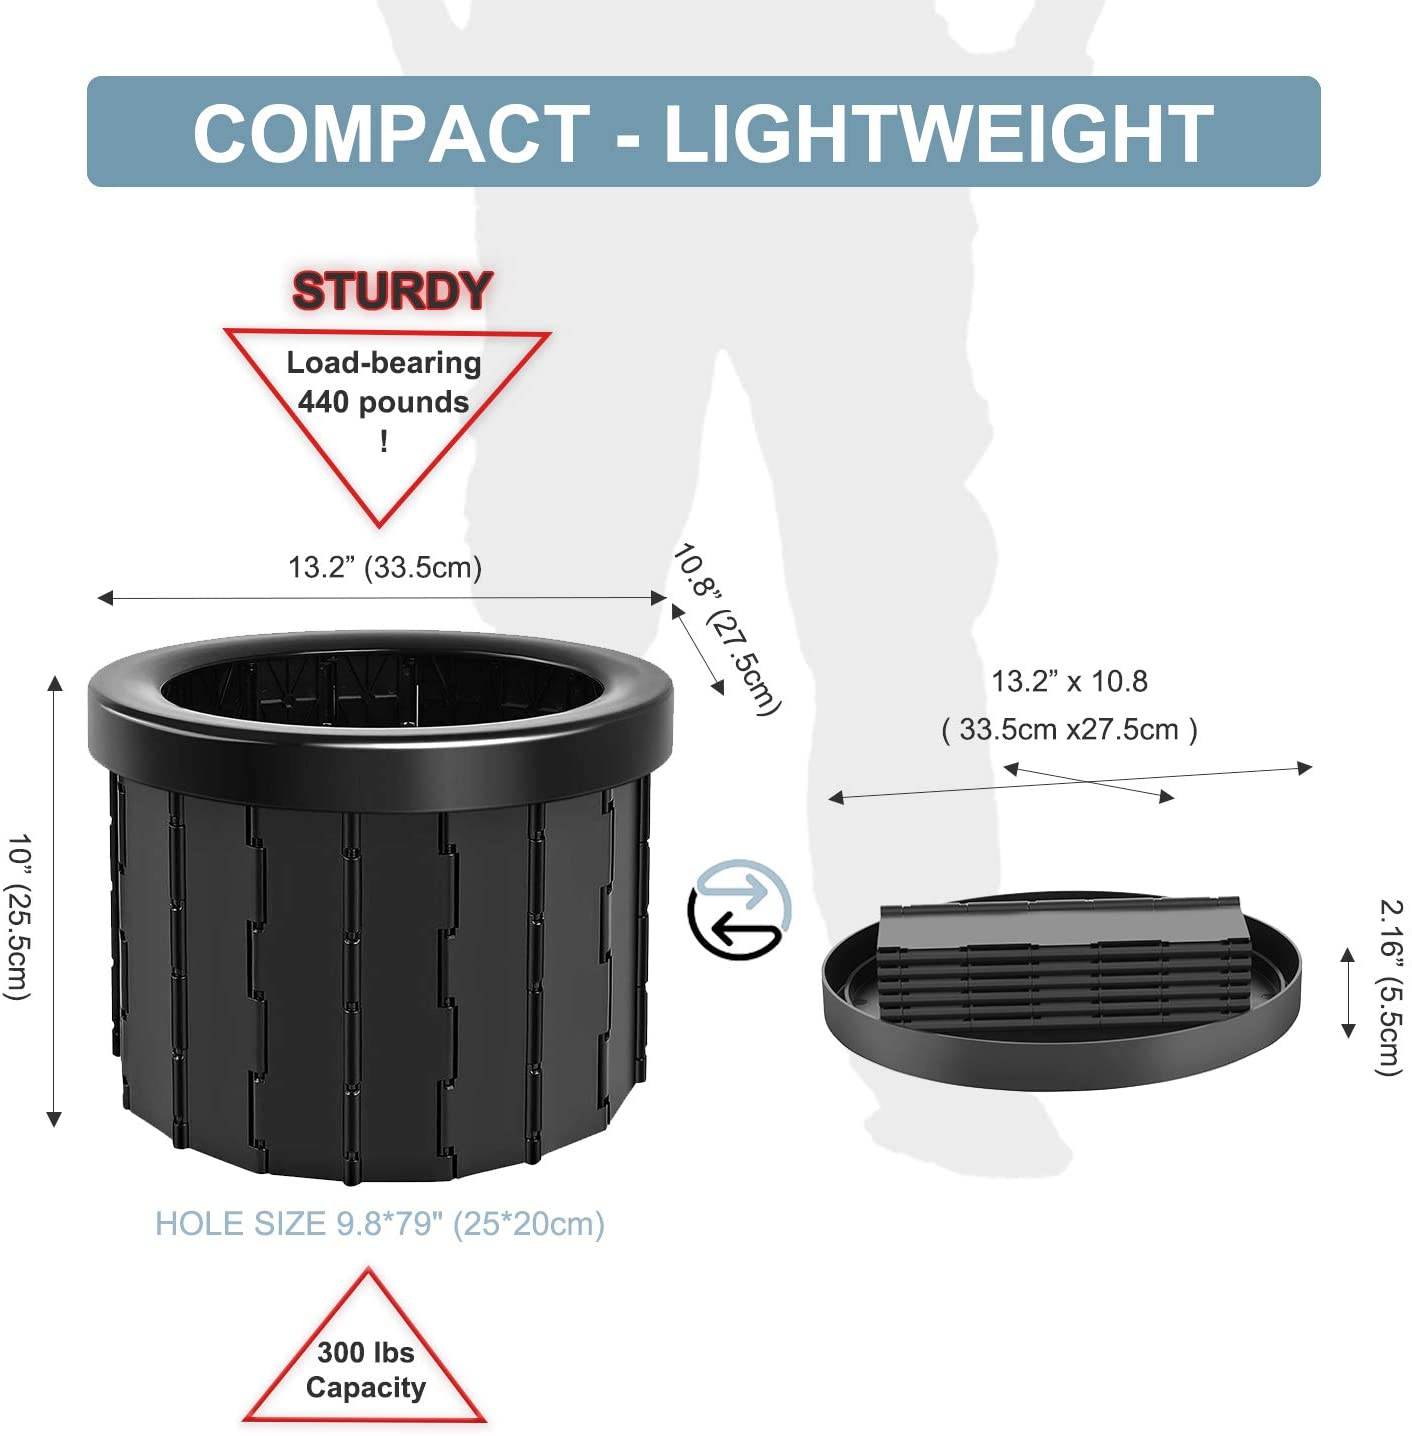 Portable Folding Toilet Commode Porta Potty Car Toilet Camping Toilet for Travel Bucket Toilet Seat for Camping Hiking Long trip 5